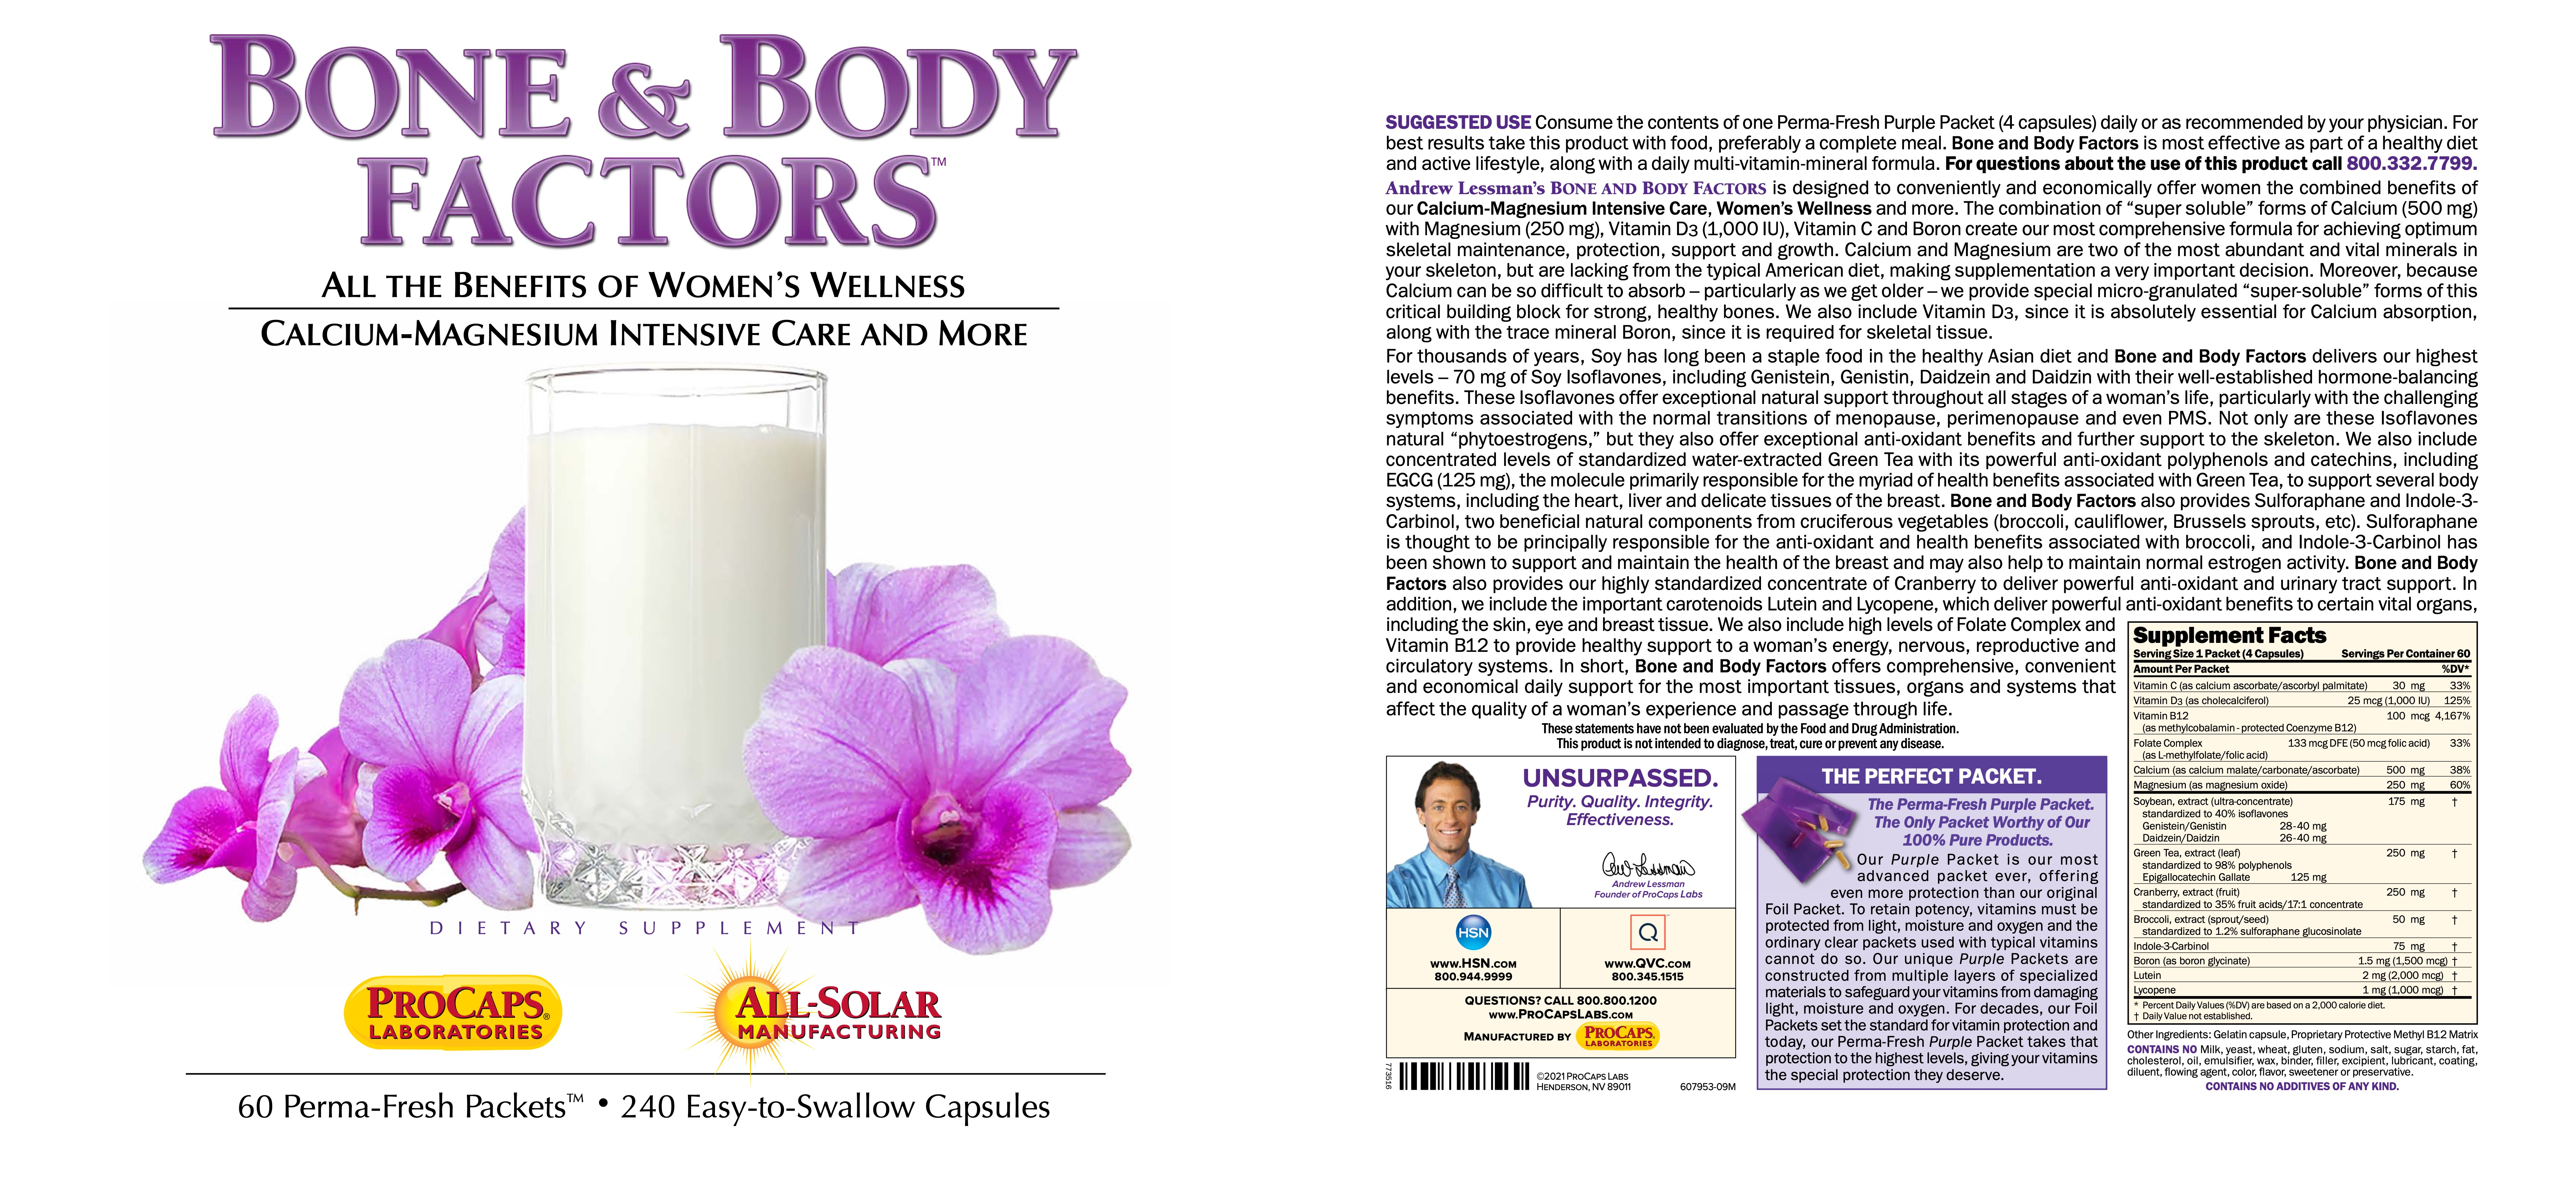 Bone-And-Body-Factors-Packets-Women-s-Products